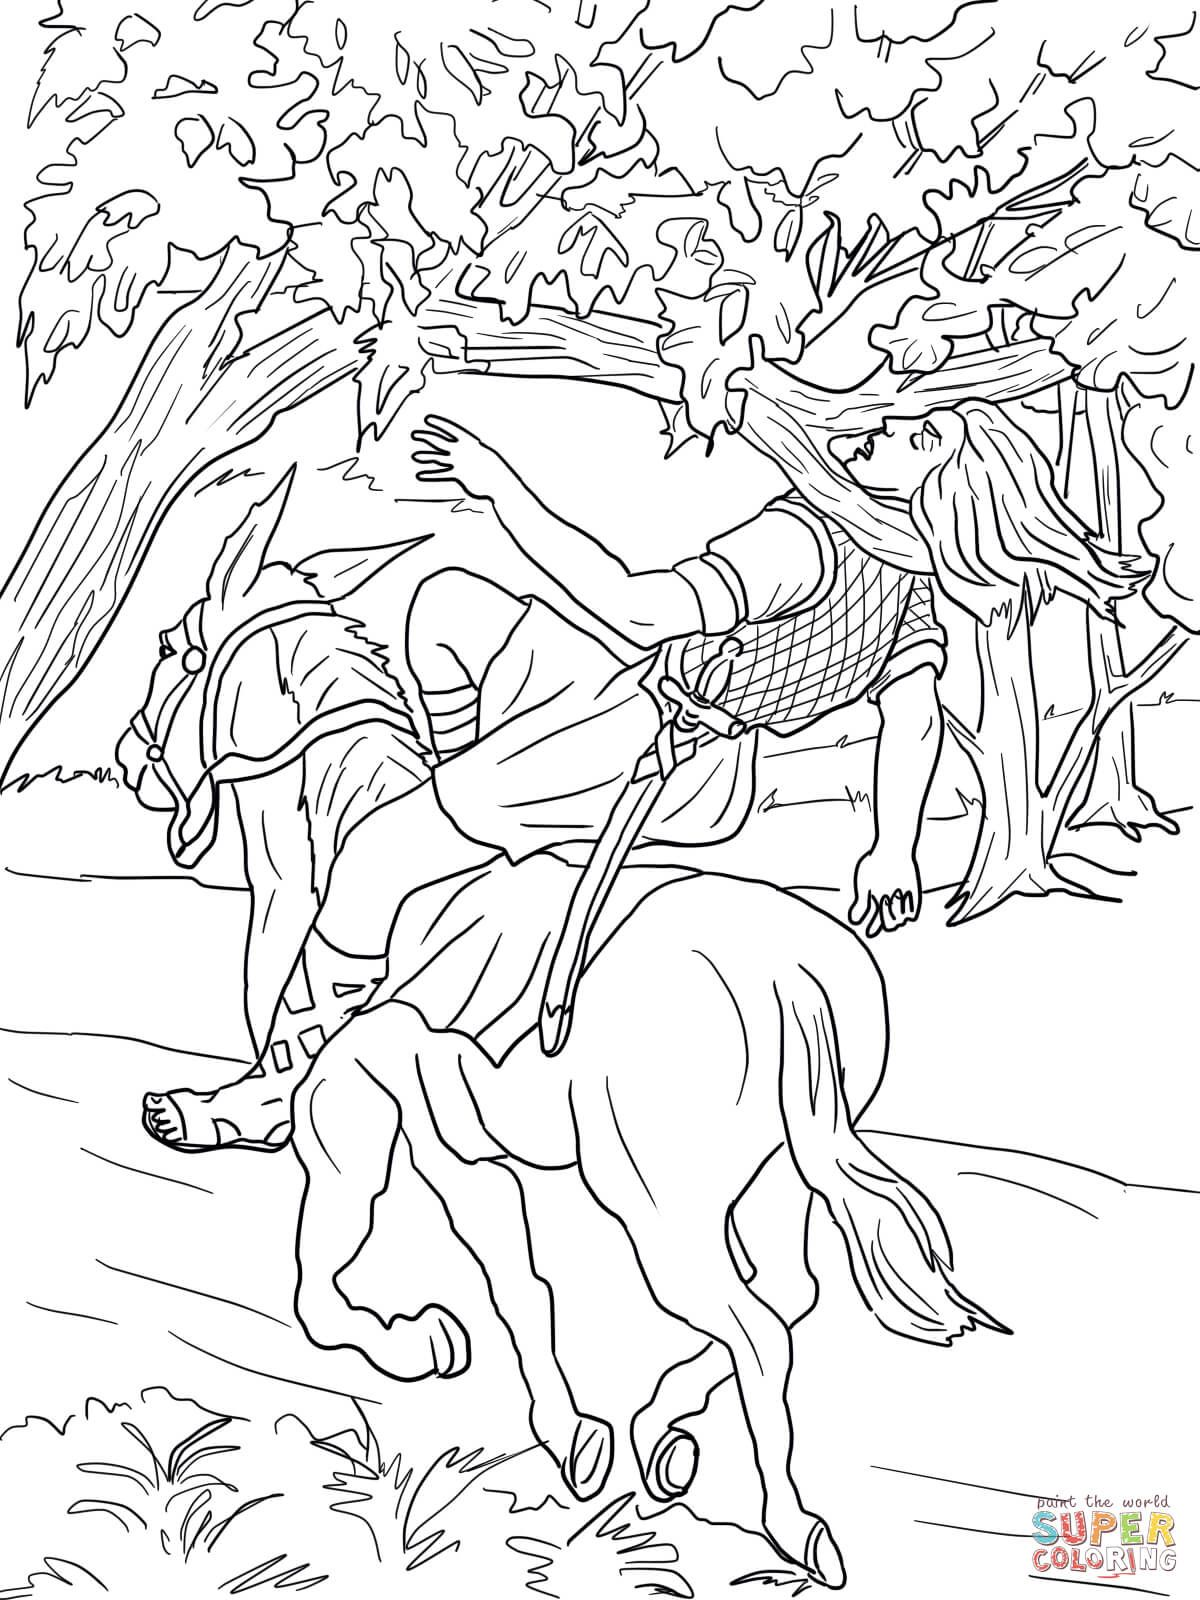 Pin By Marina On חגים עונות השנה תנך Sunday School Coloring Pages Bible Coloring Pages Bible Crafts